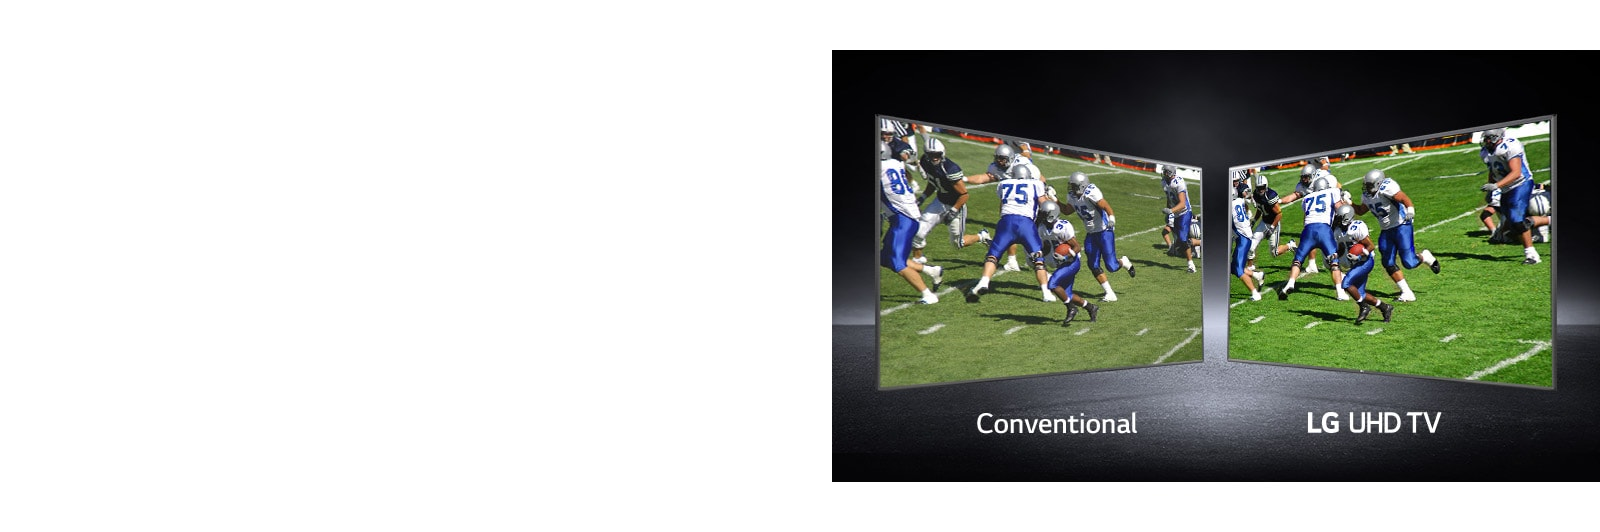 A picture of players playing on a football field shown at views. One shown on a conventional screen and one on an UHD TV.